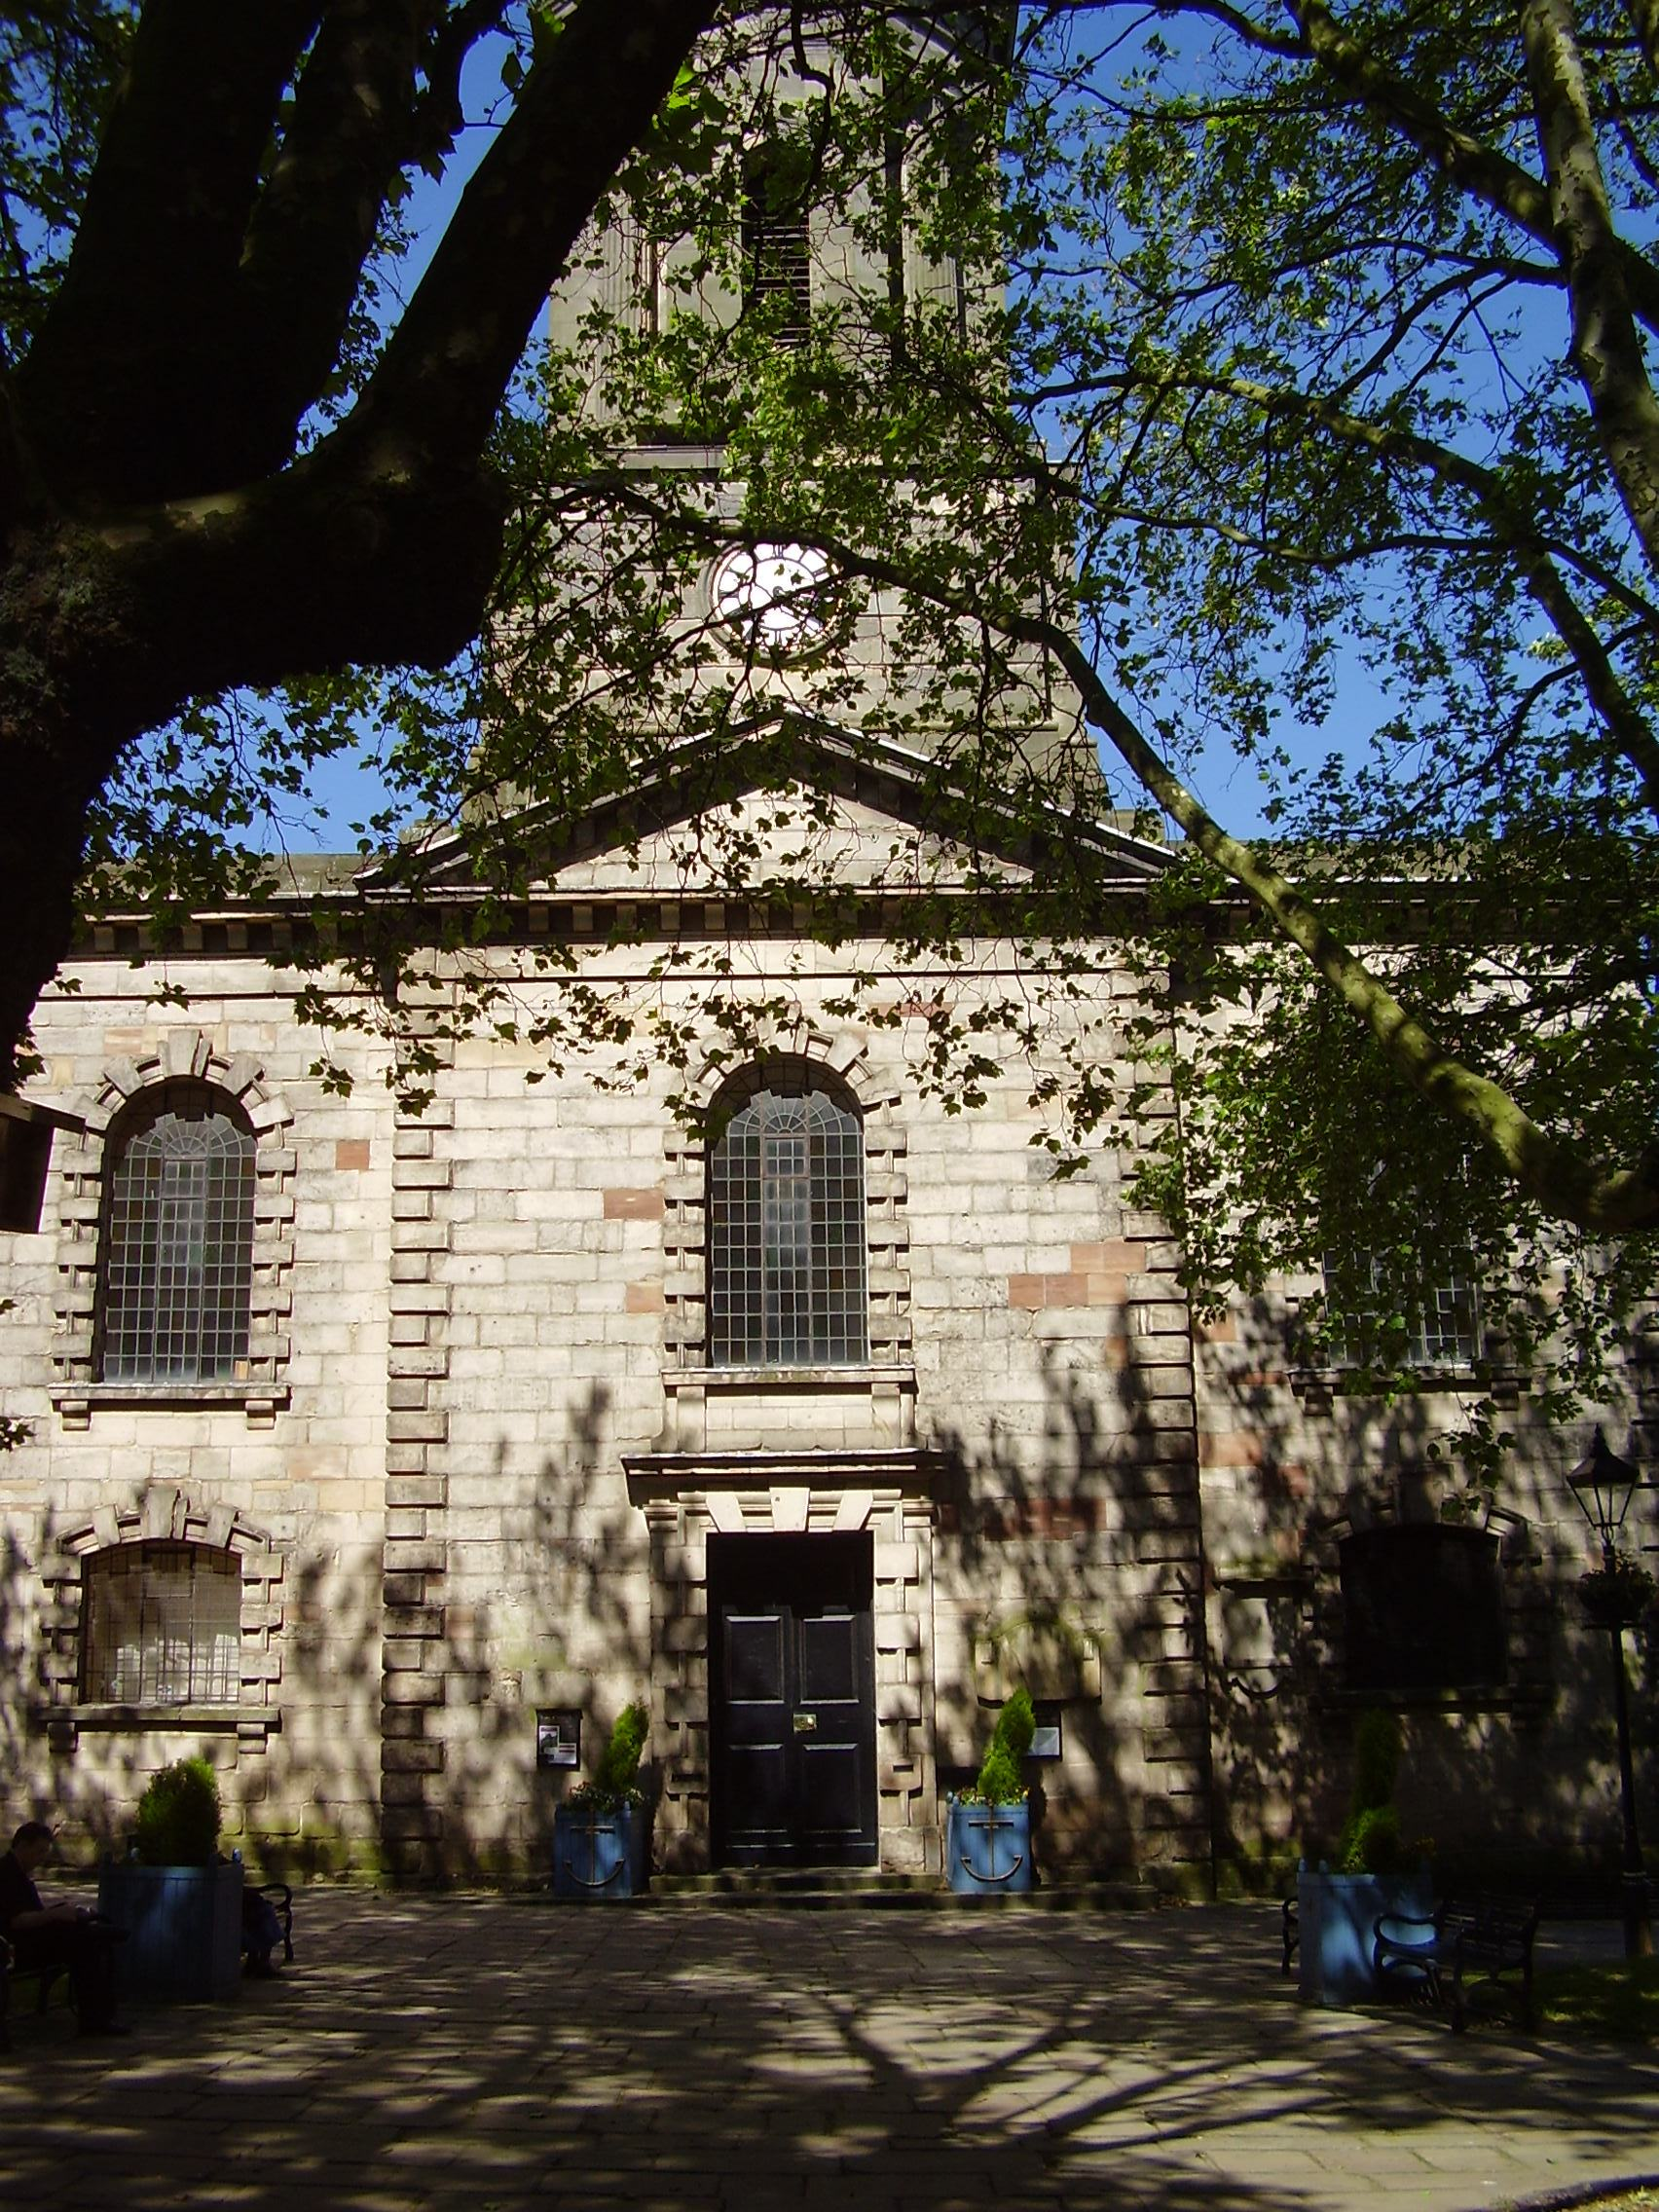 St Paul's Church Grade 1 listed Built 1779 Photo 2008 Jewellery Quarter Birmingham